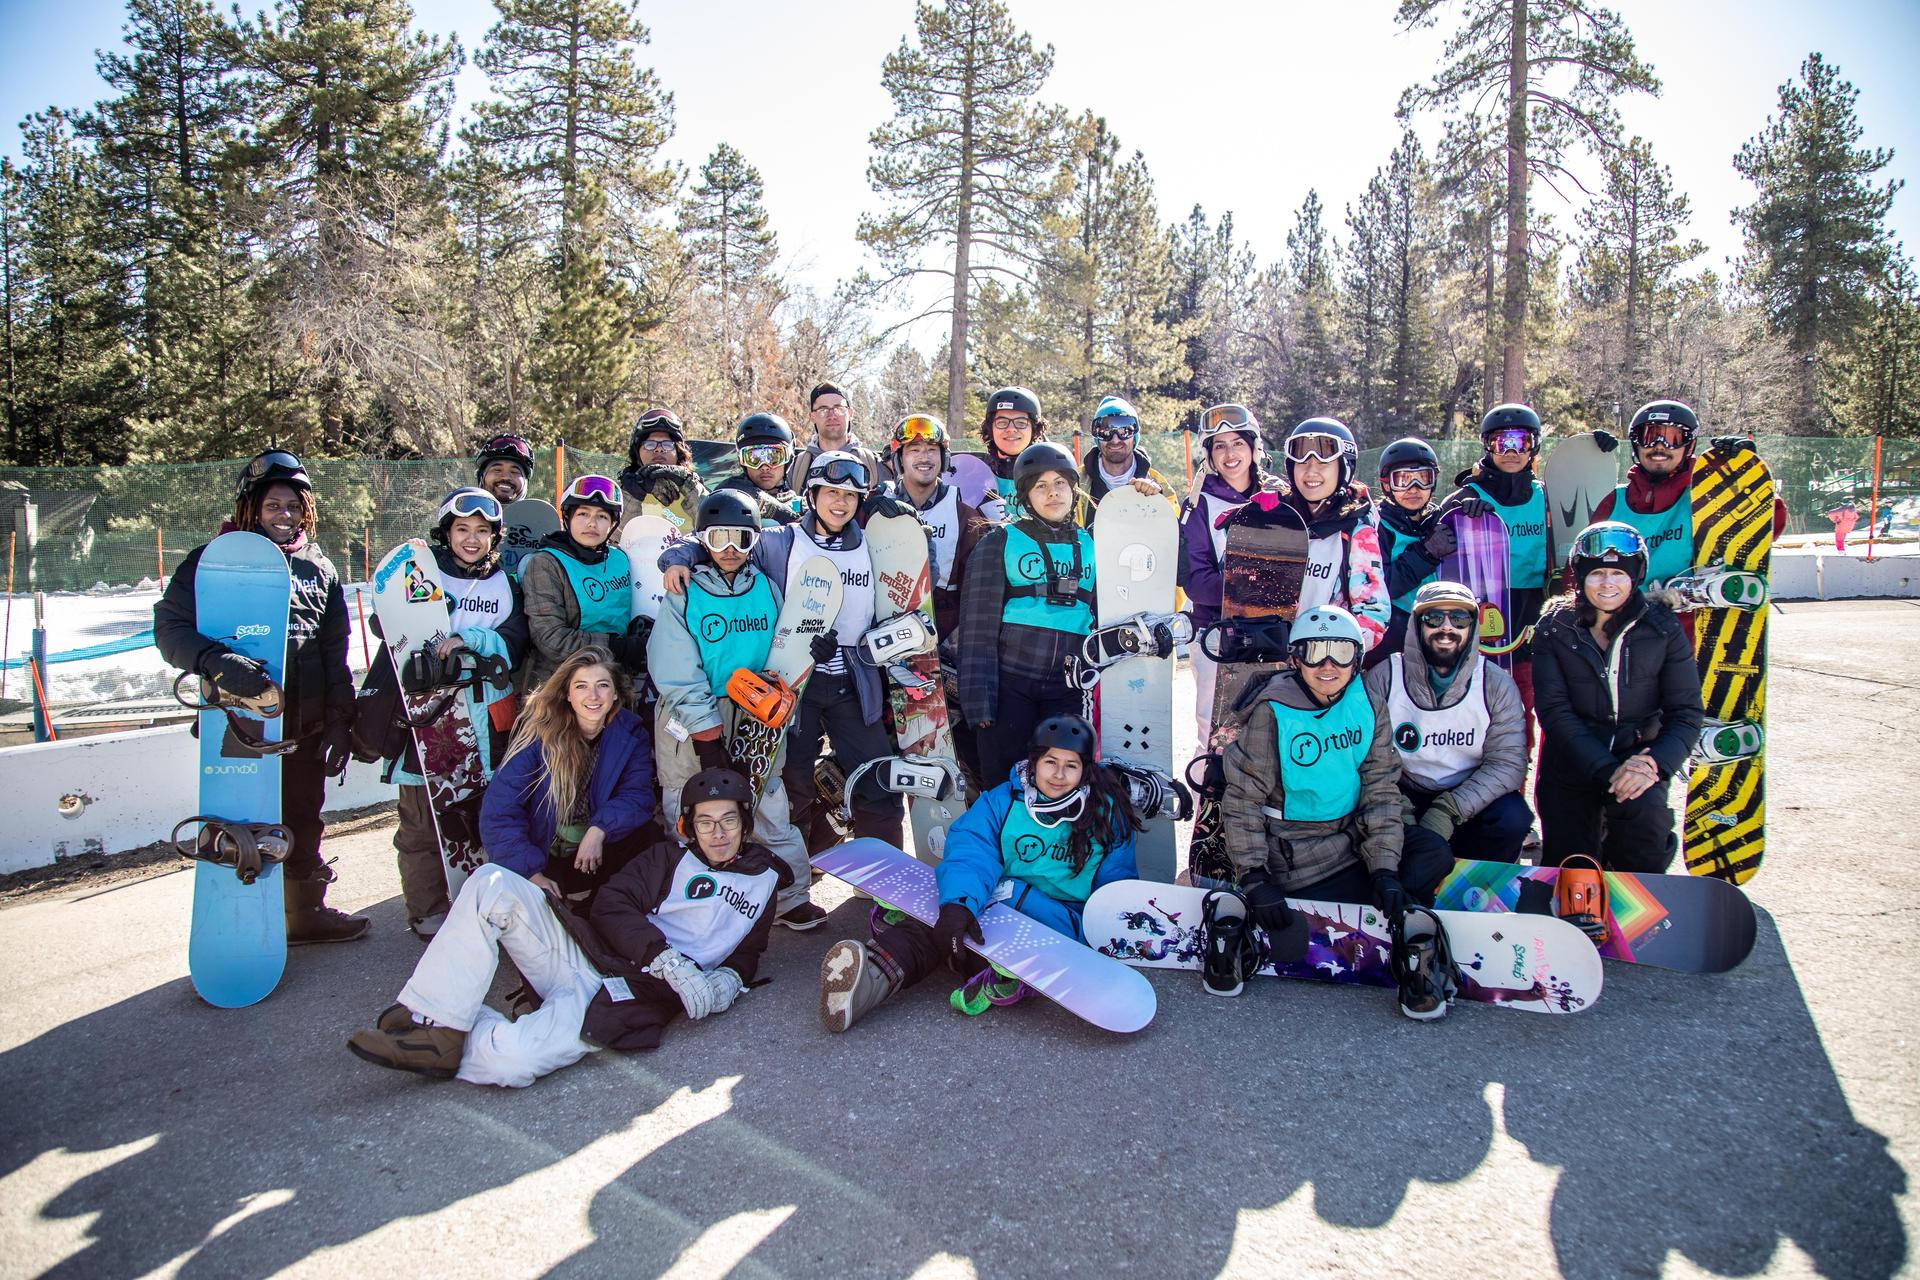 ICEF Vista Middle Charter Academy and View Park Prep High School Snowboarding in Snow Summit, Big Bear